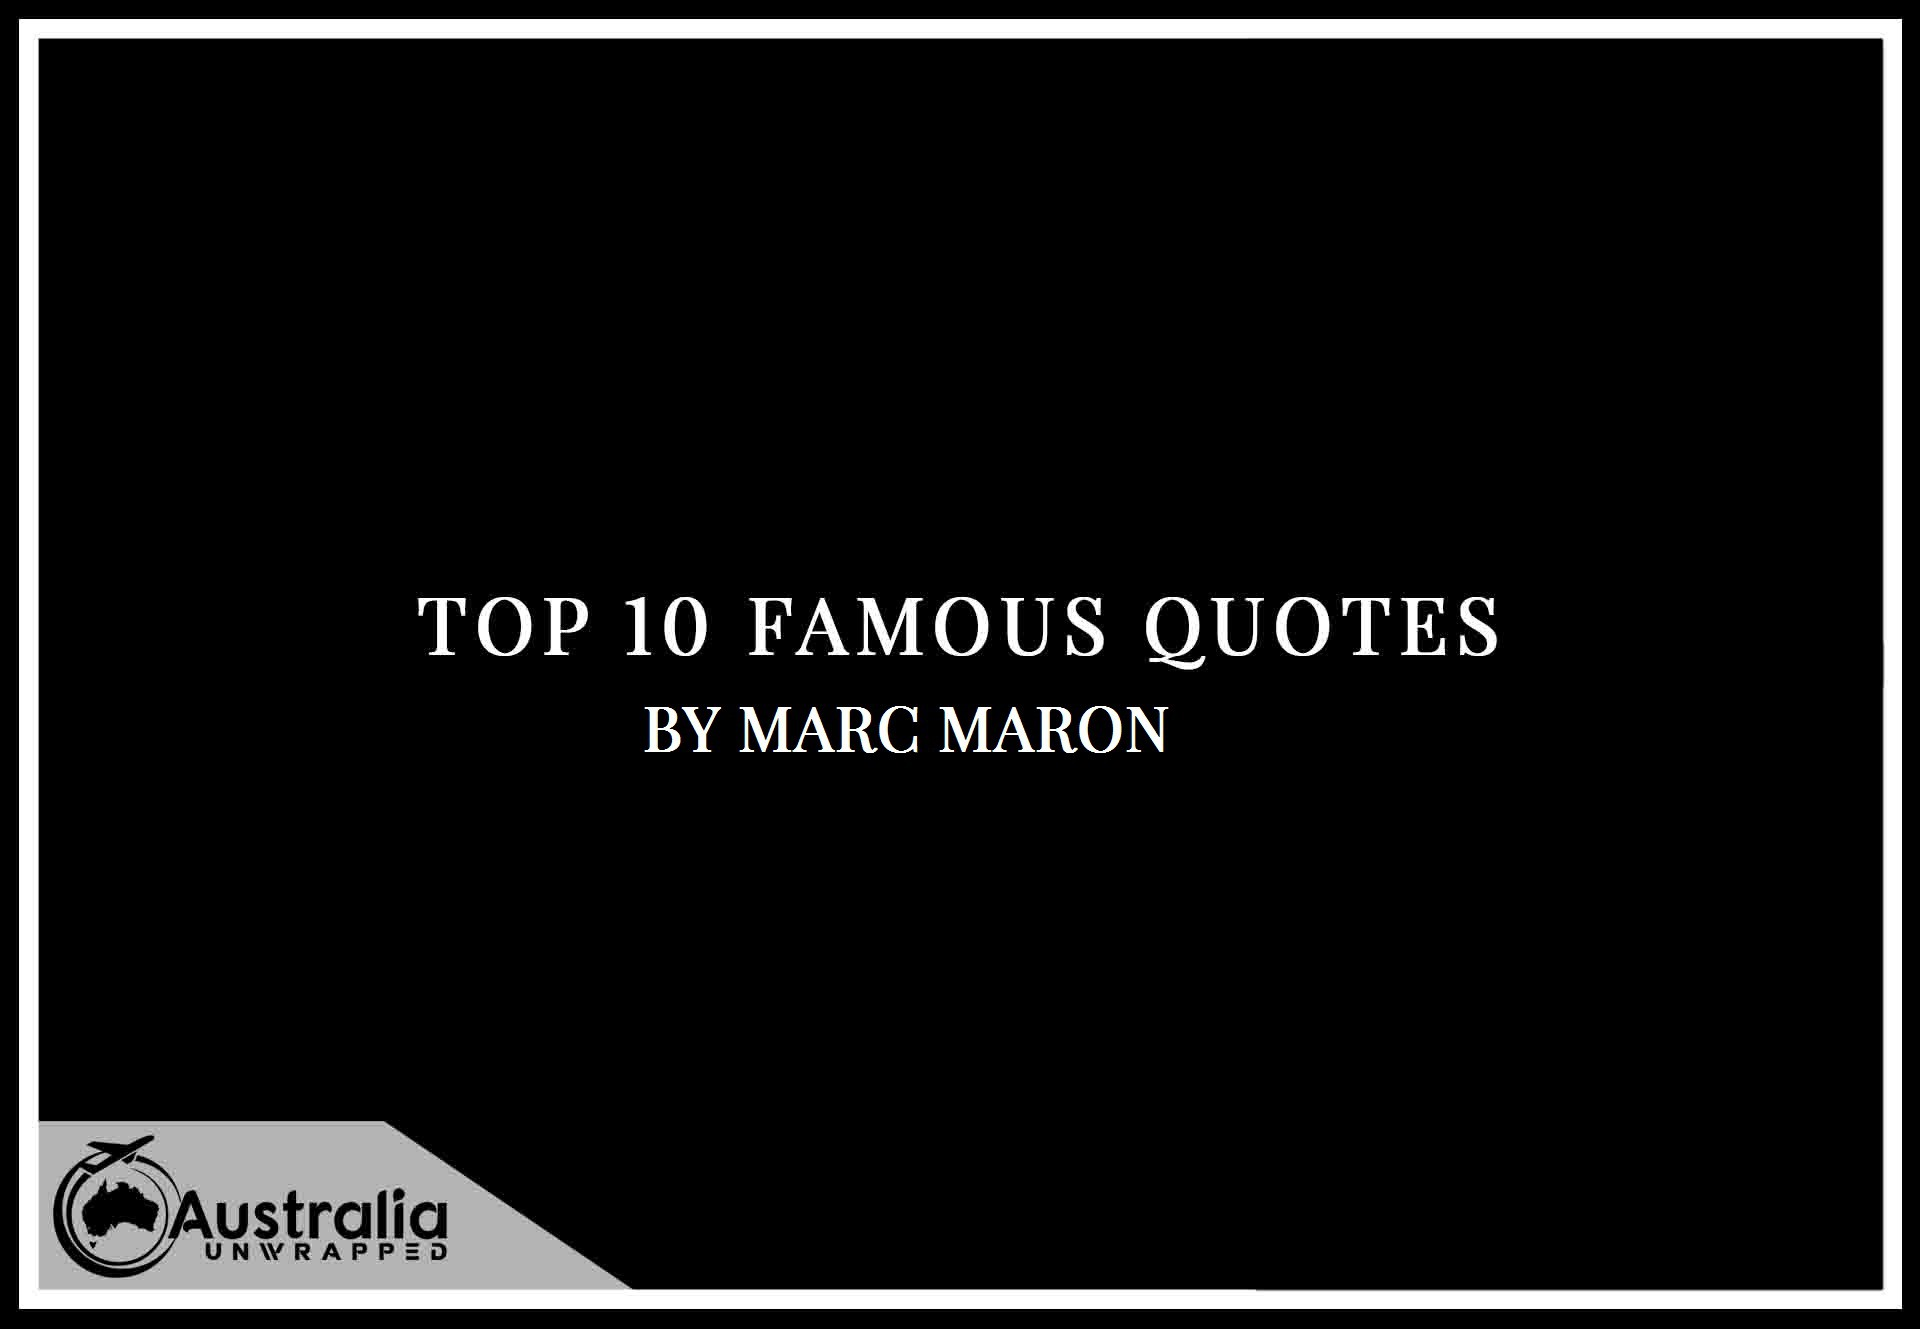 Marc Guggenheim's Top 4 Popular and Famous Quotes